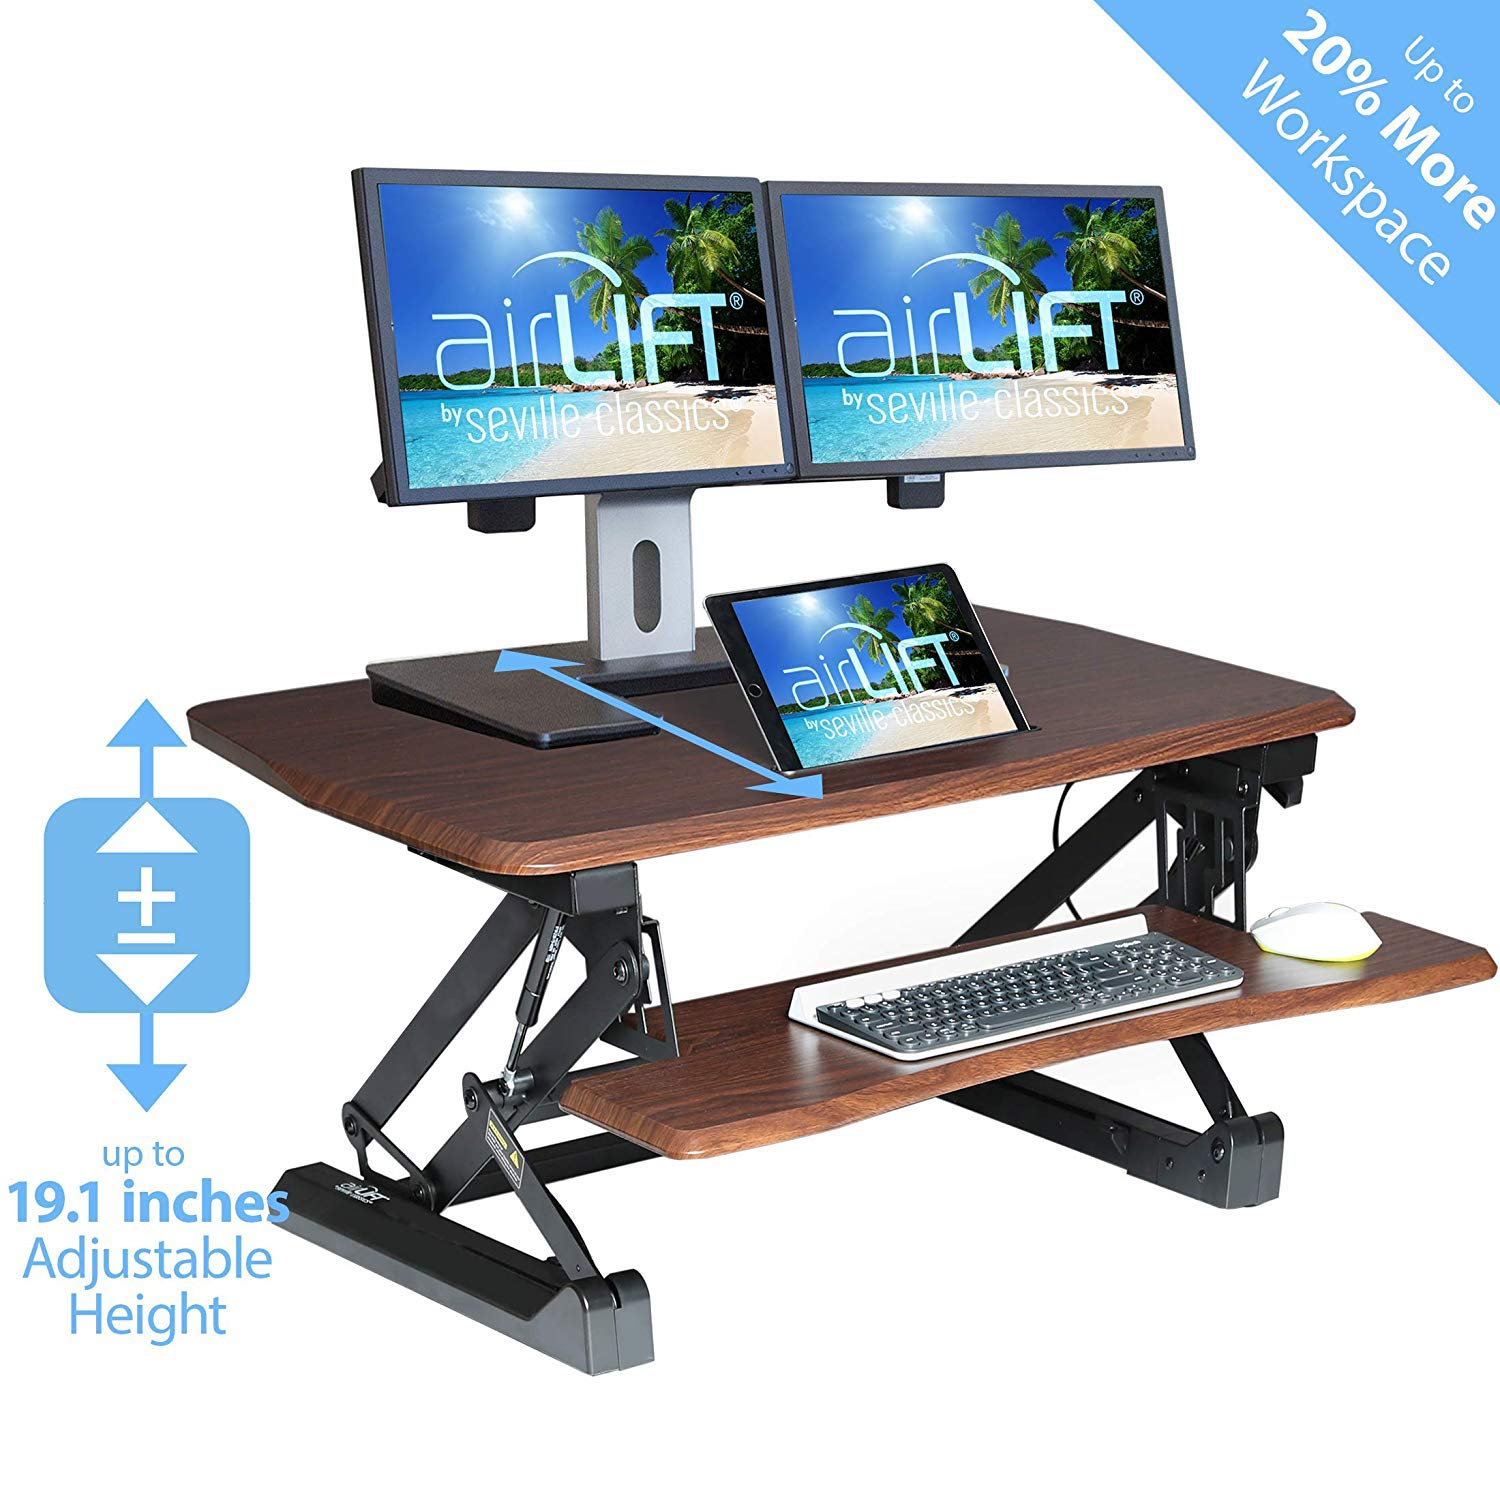 Seville Classics AIRLIFT 36'' Gas-Spring Height Adjustable Standing Desk Converter Workstation Ergonomic Dual Monitor Riser with Keyboard Tray and Phone/Tablet Holder, Walnut by Seville Classics